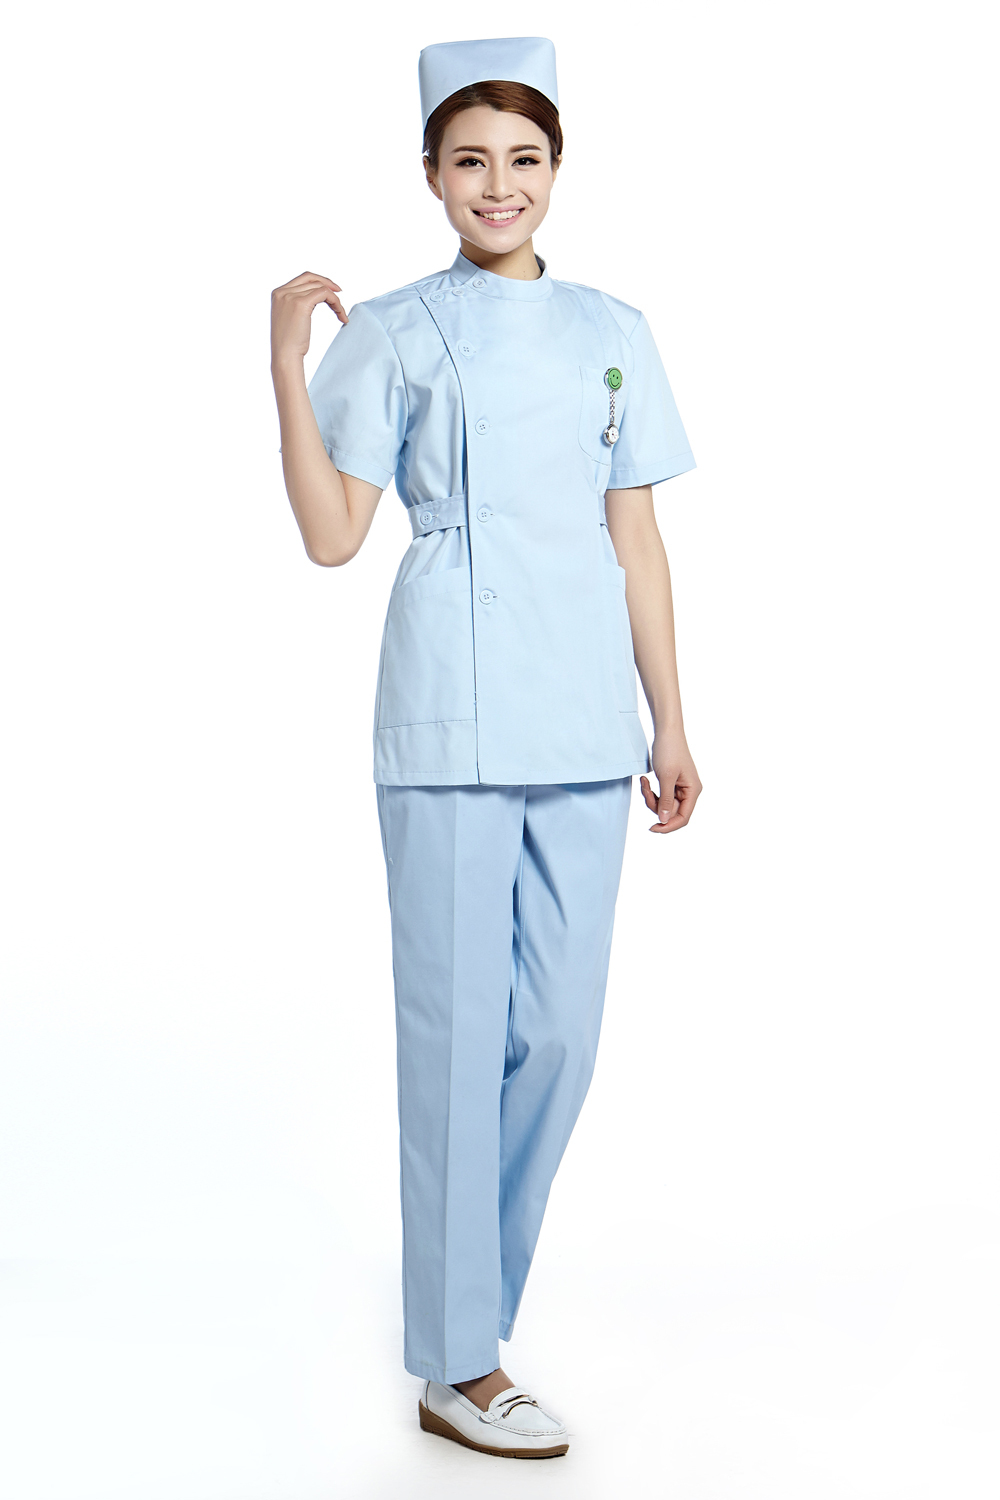 uniform dating code for nurses Meet the military or police man or woman of your dreams at uniform singles connect with people in uniforms for friendship, romance, love, and marriage, uniform singles.